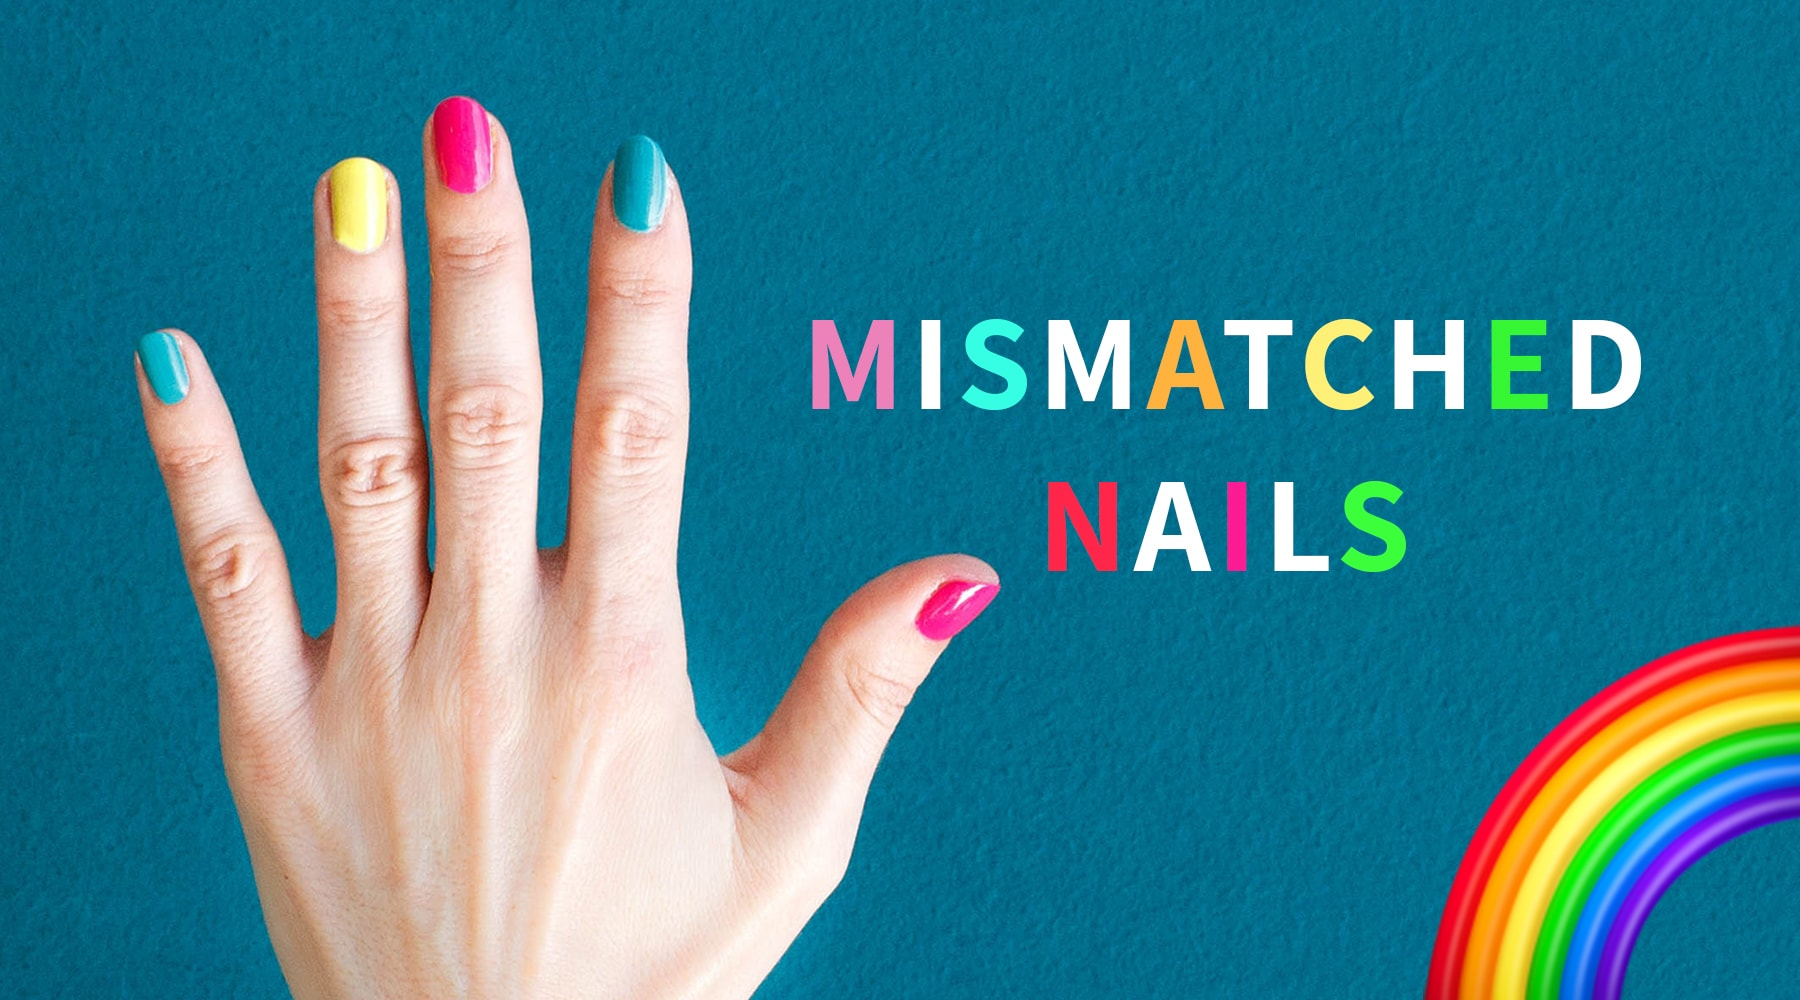 Nageltrend: Mismatched Nails